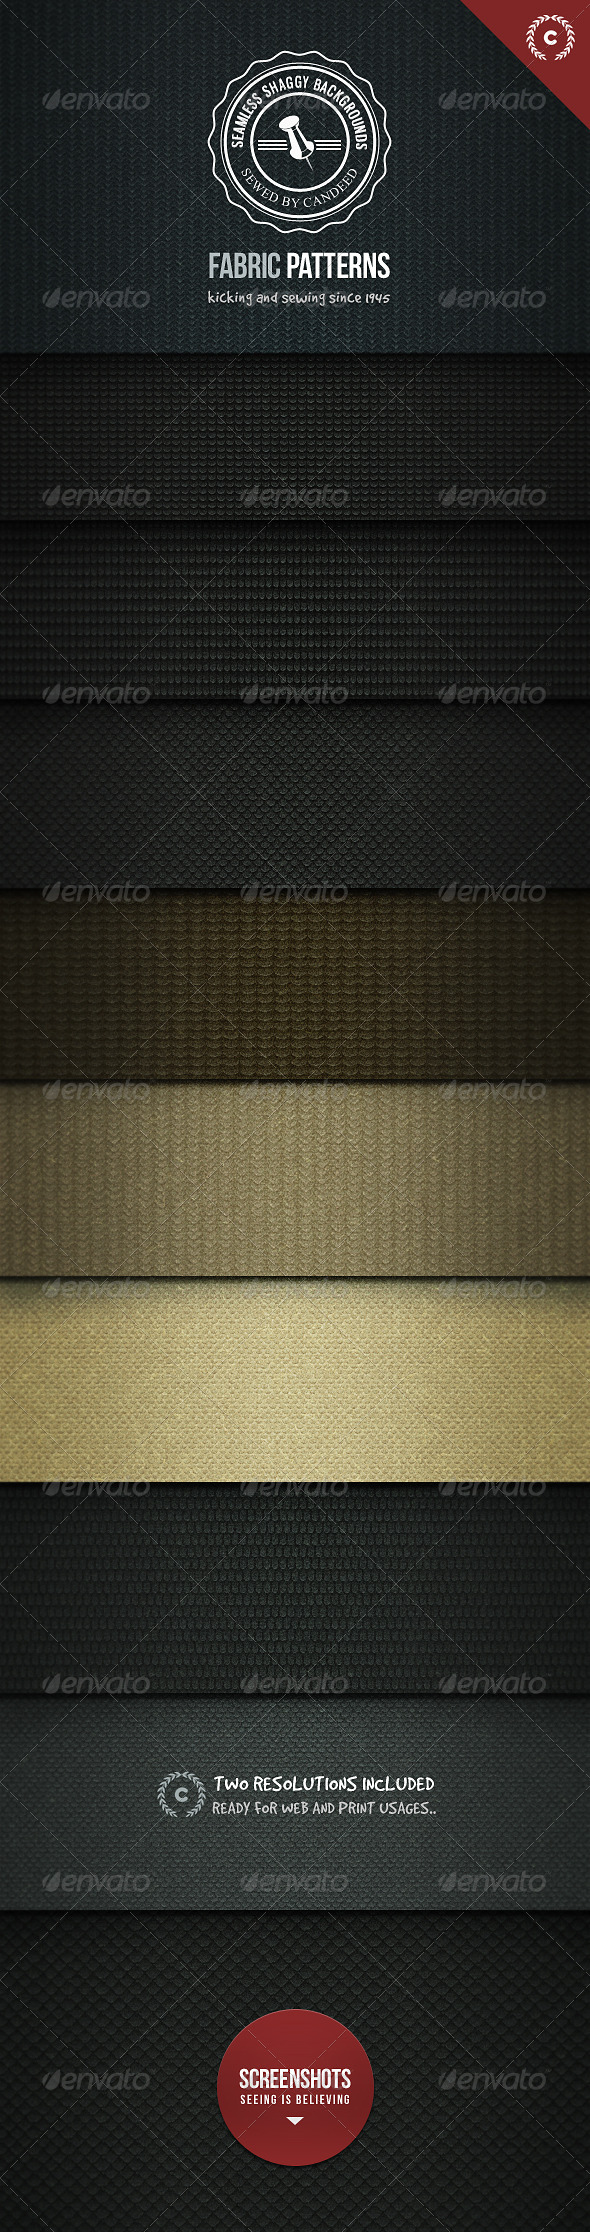 Seamless Shaggy! Fabric Texture Background - Patterns Backgrounds